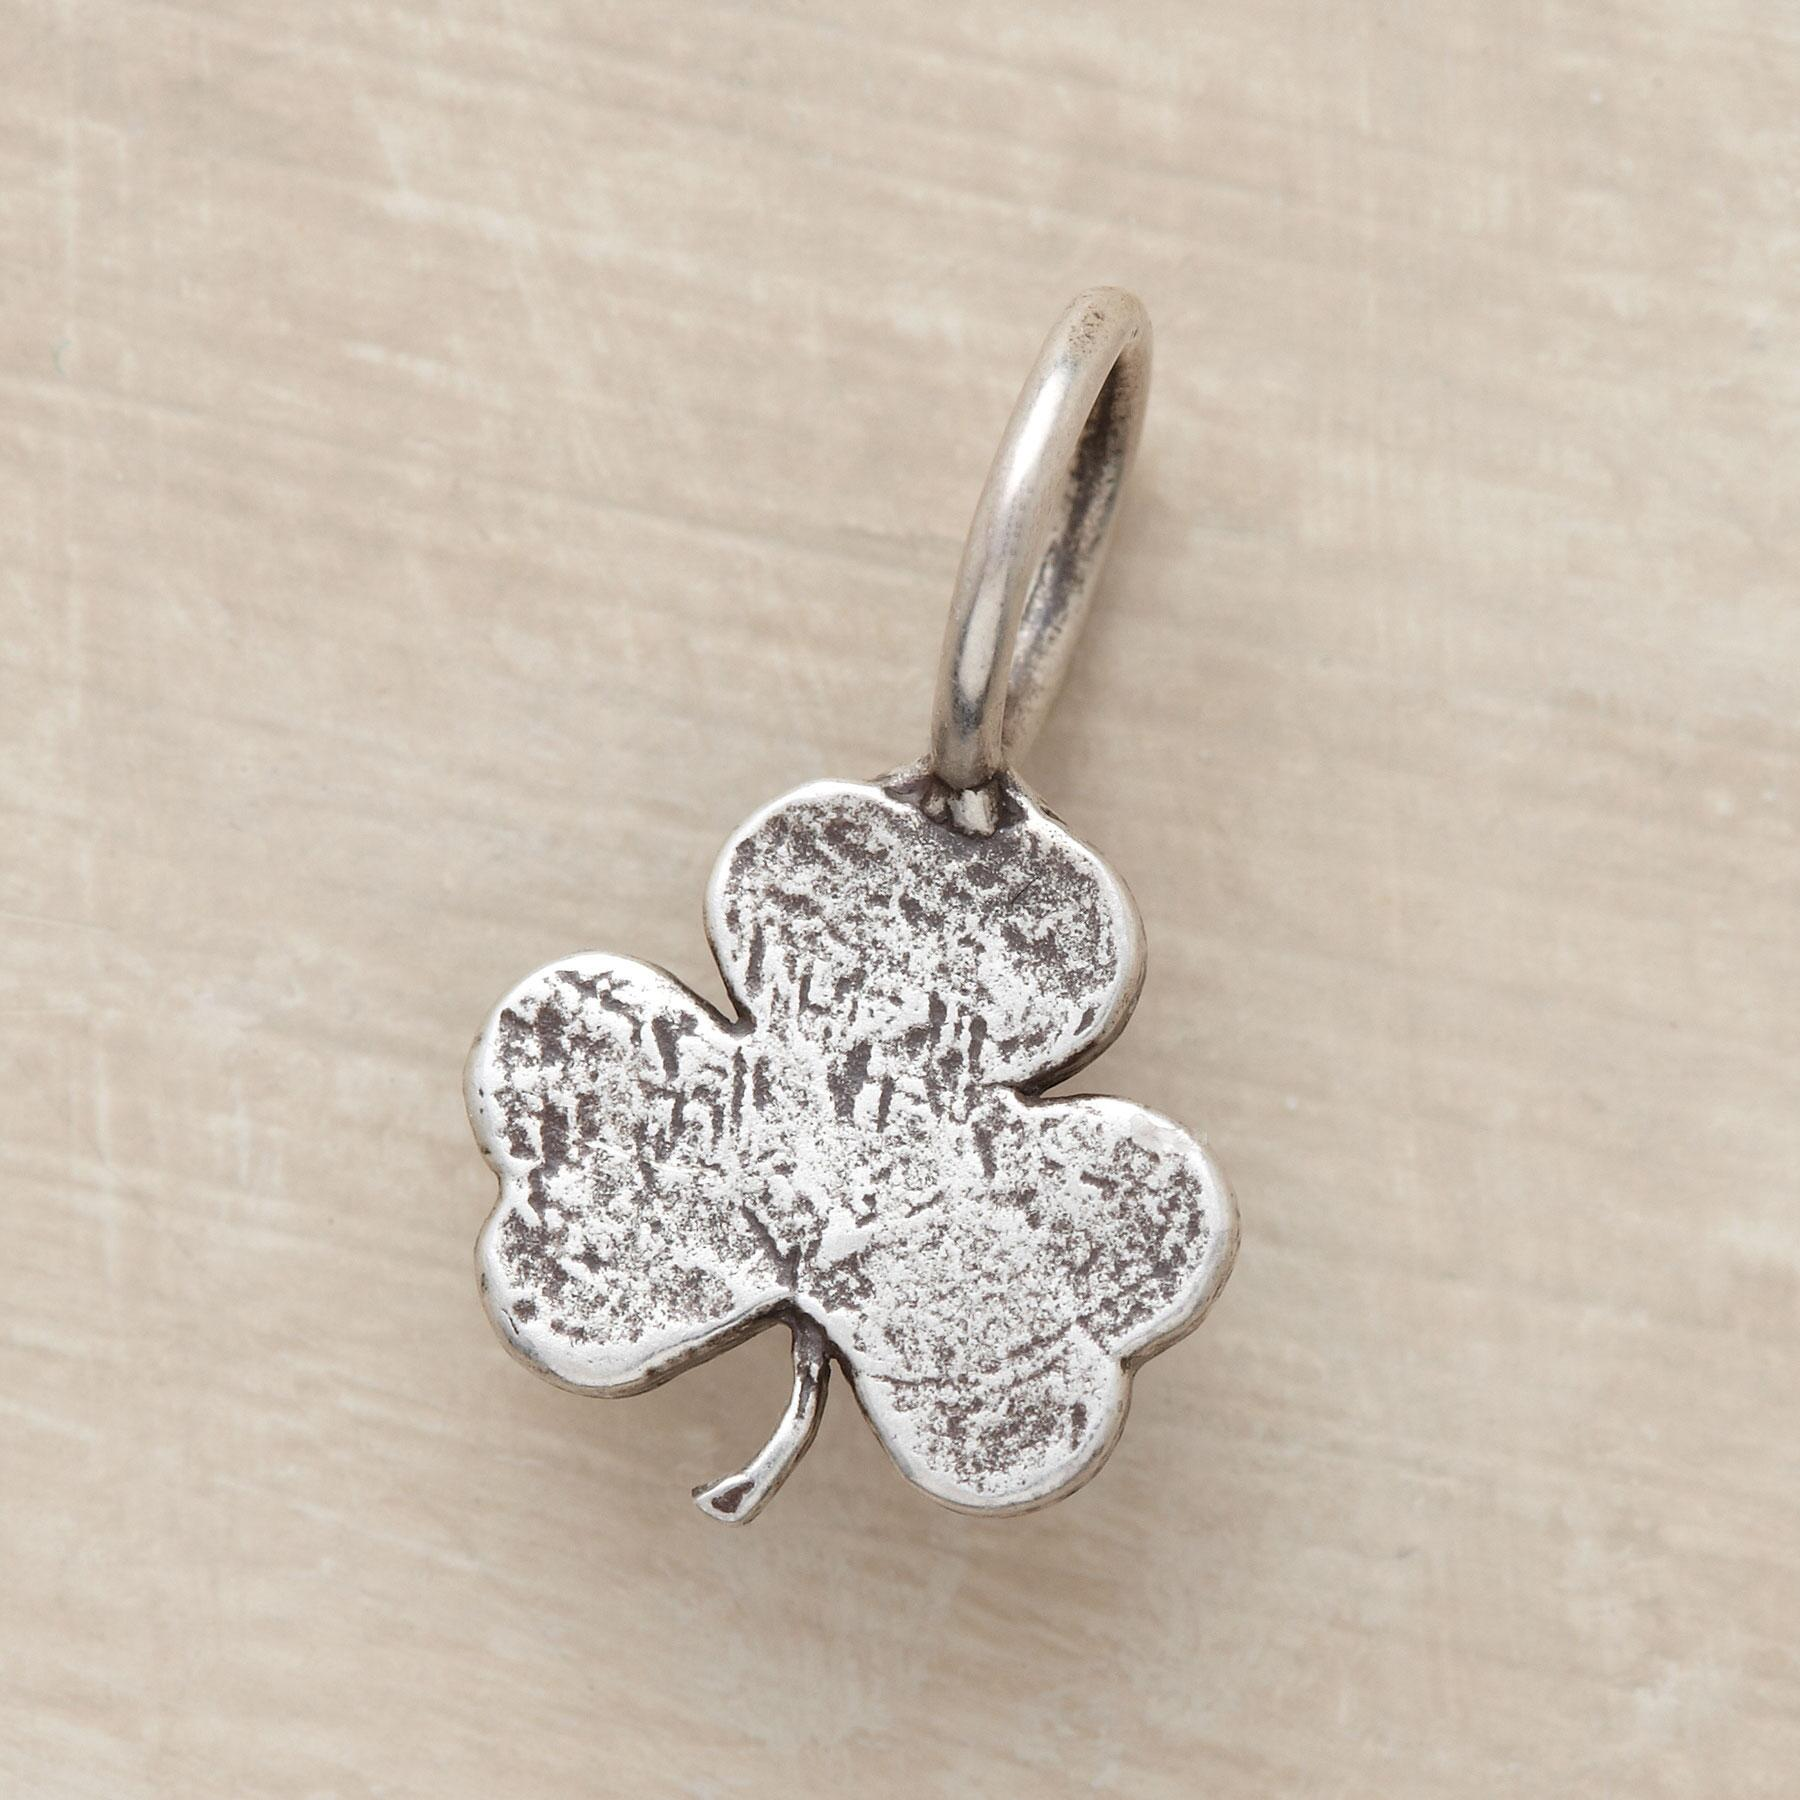 SHAPE CHARMS: View 3